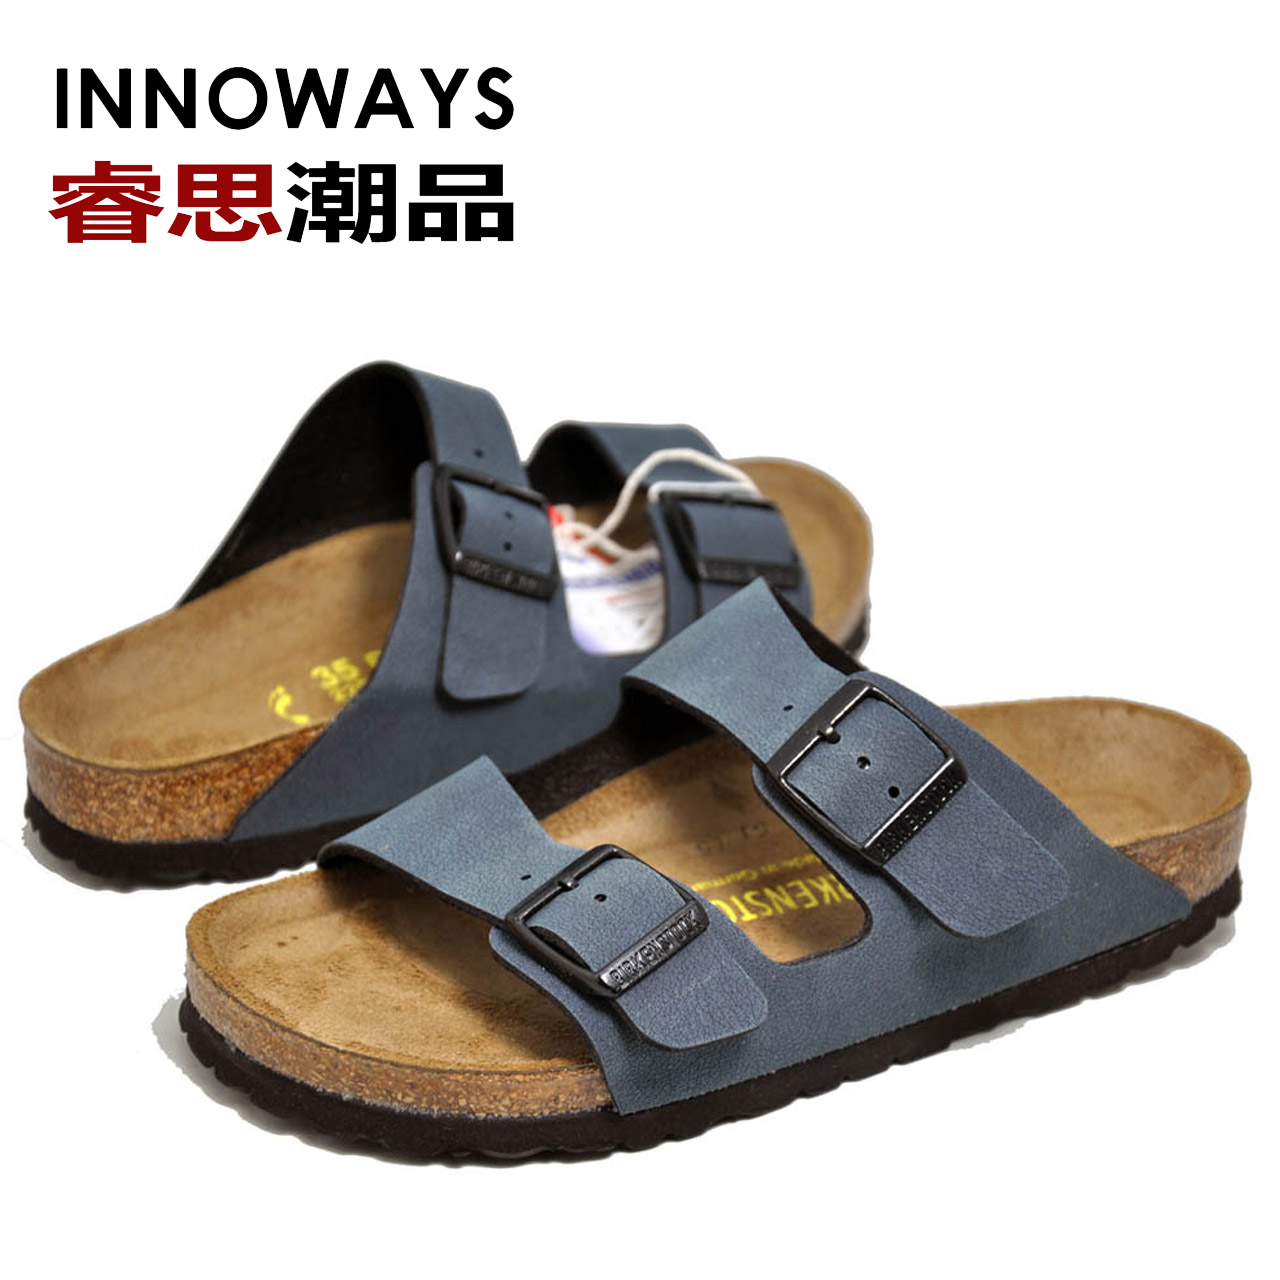 Products in germany birkenstock innoways two with [soft] ona ariz selling models